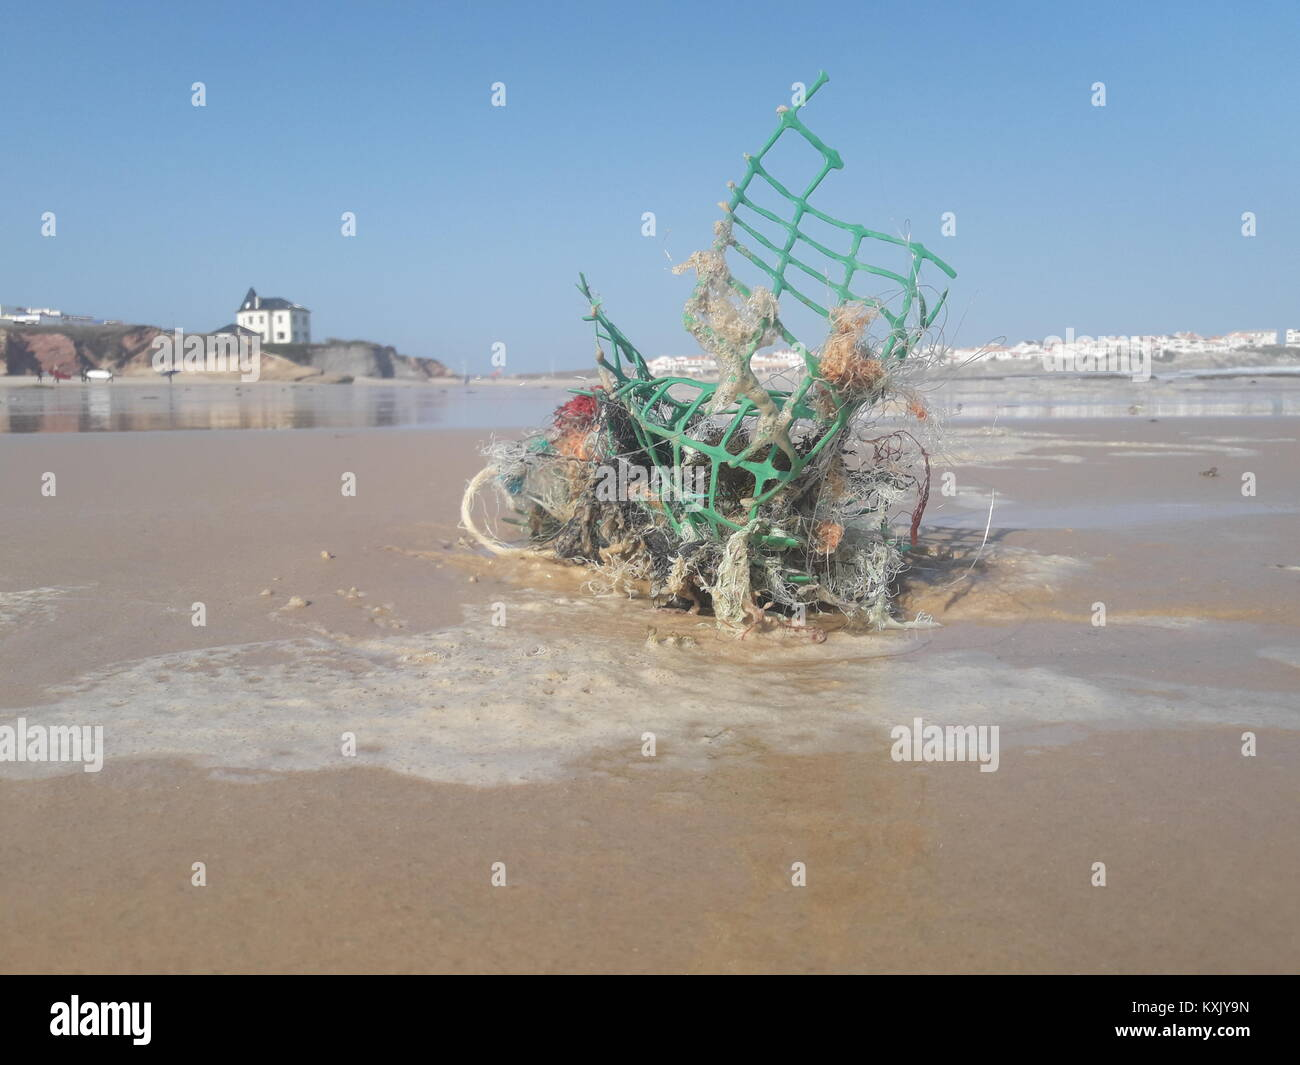 Marine Litter Sculpture at the Beach, Stranded Plastic Debris from Fishing Industry in beautiful Baleal. - Stock Image